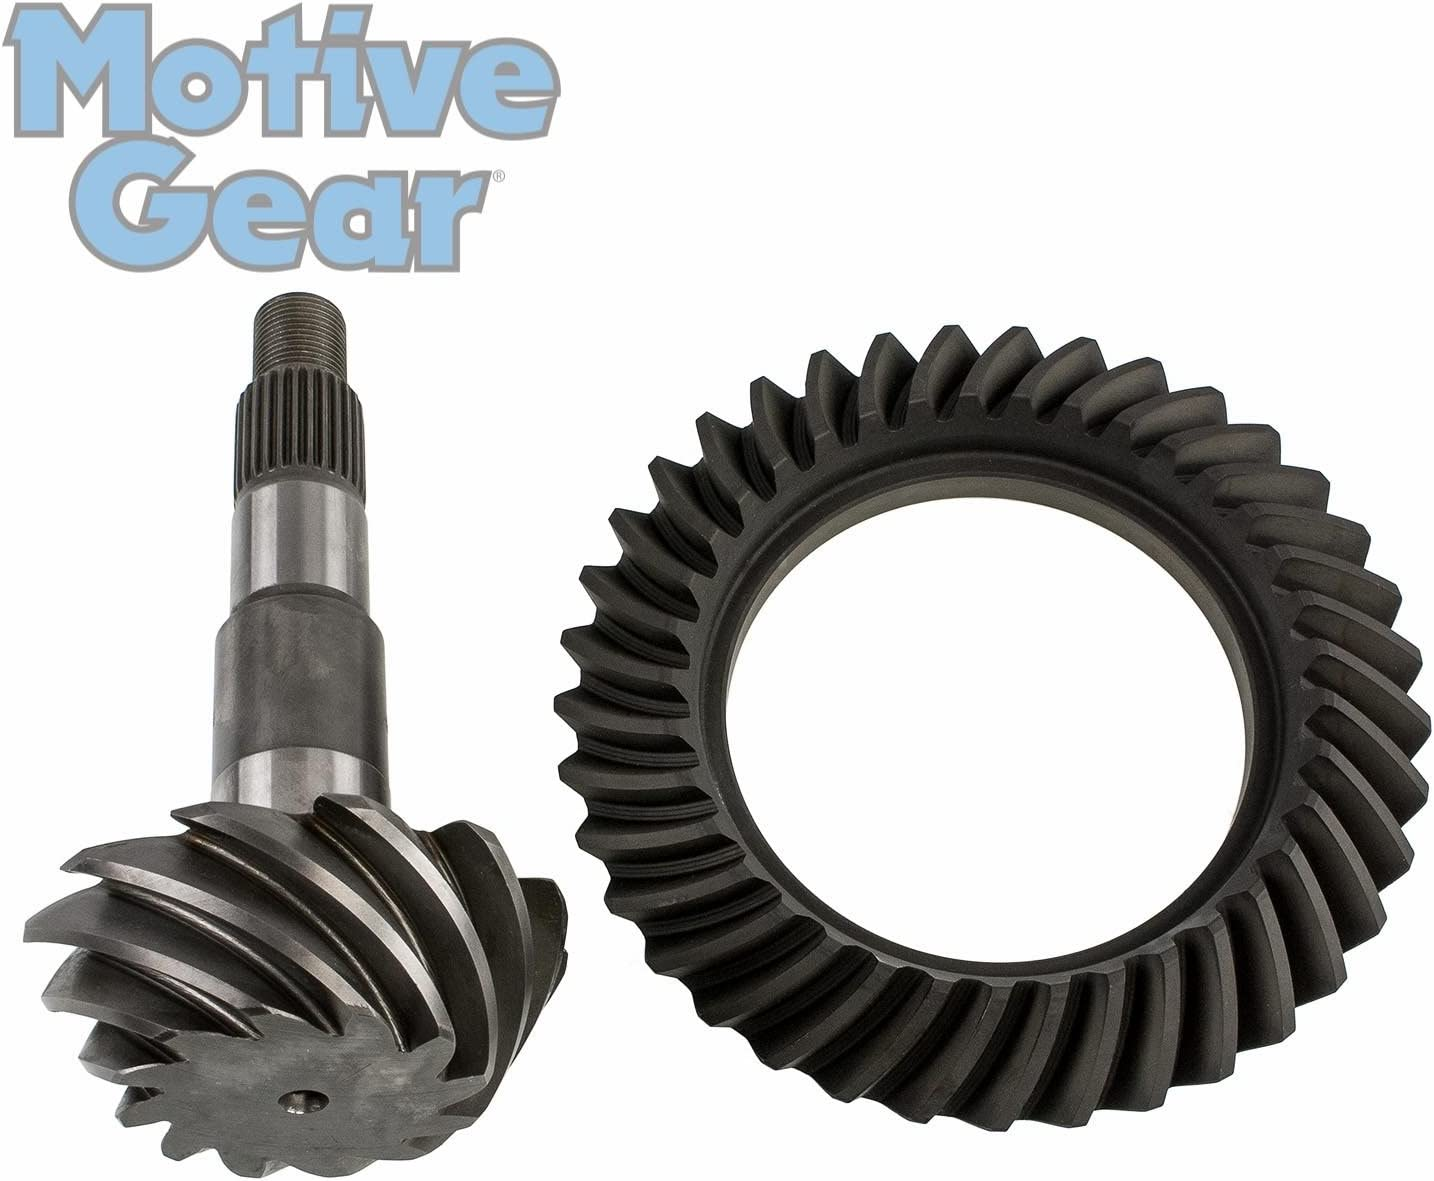 GM 7.5 /& 7.625 Style, 3.23 Ratio Motive Gear GM7.5-323 Ring and Pinion